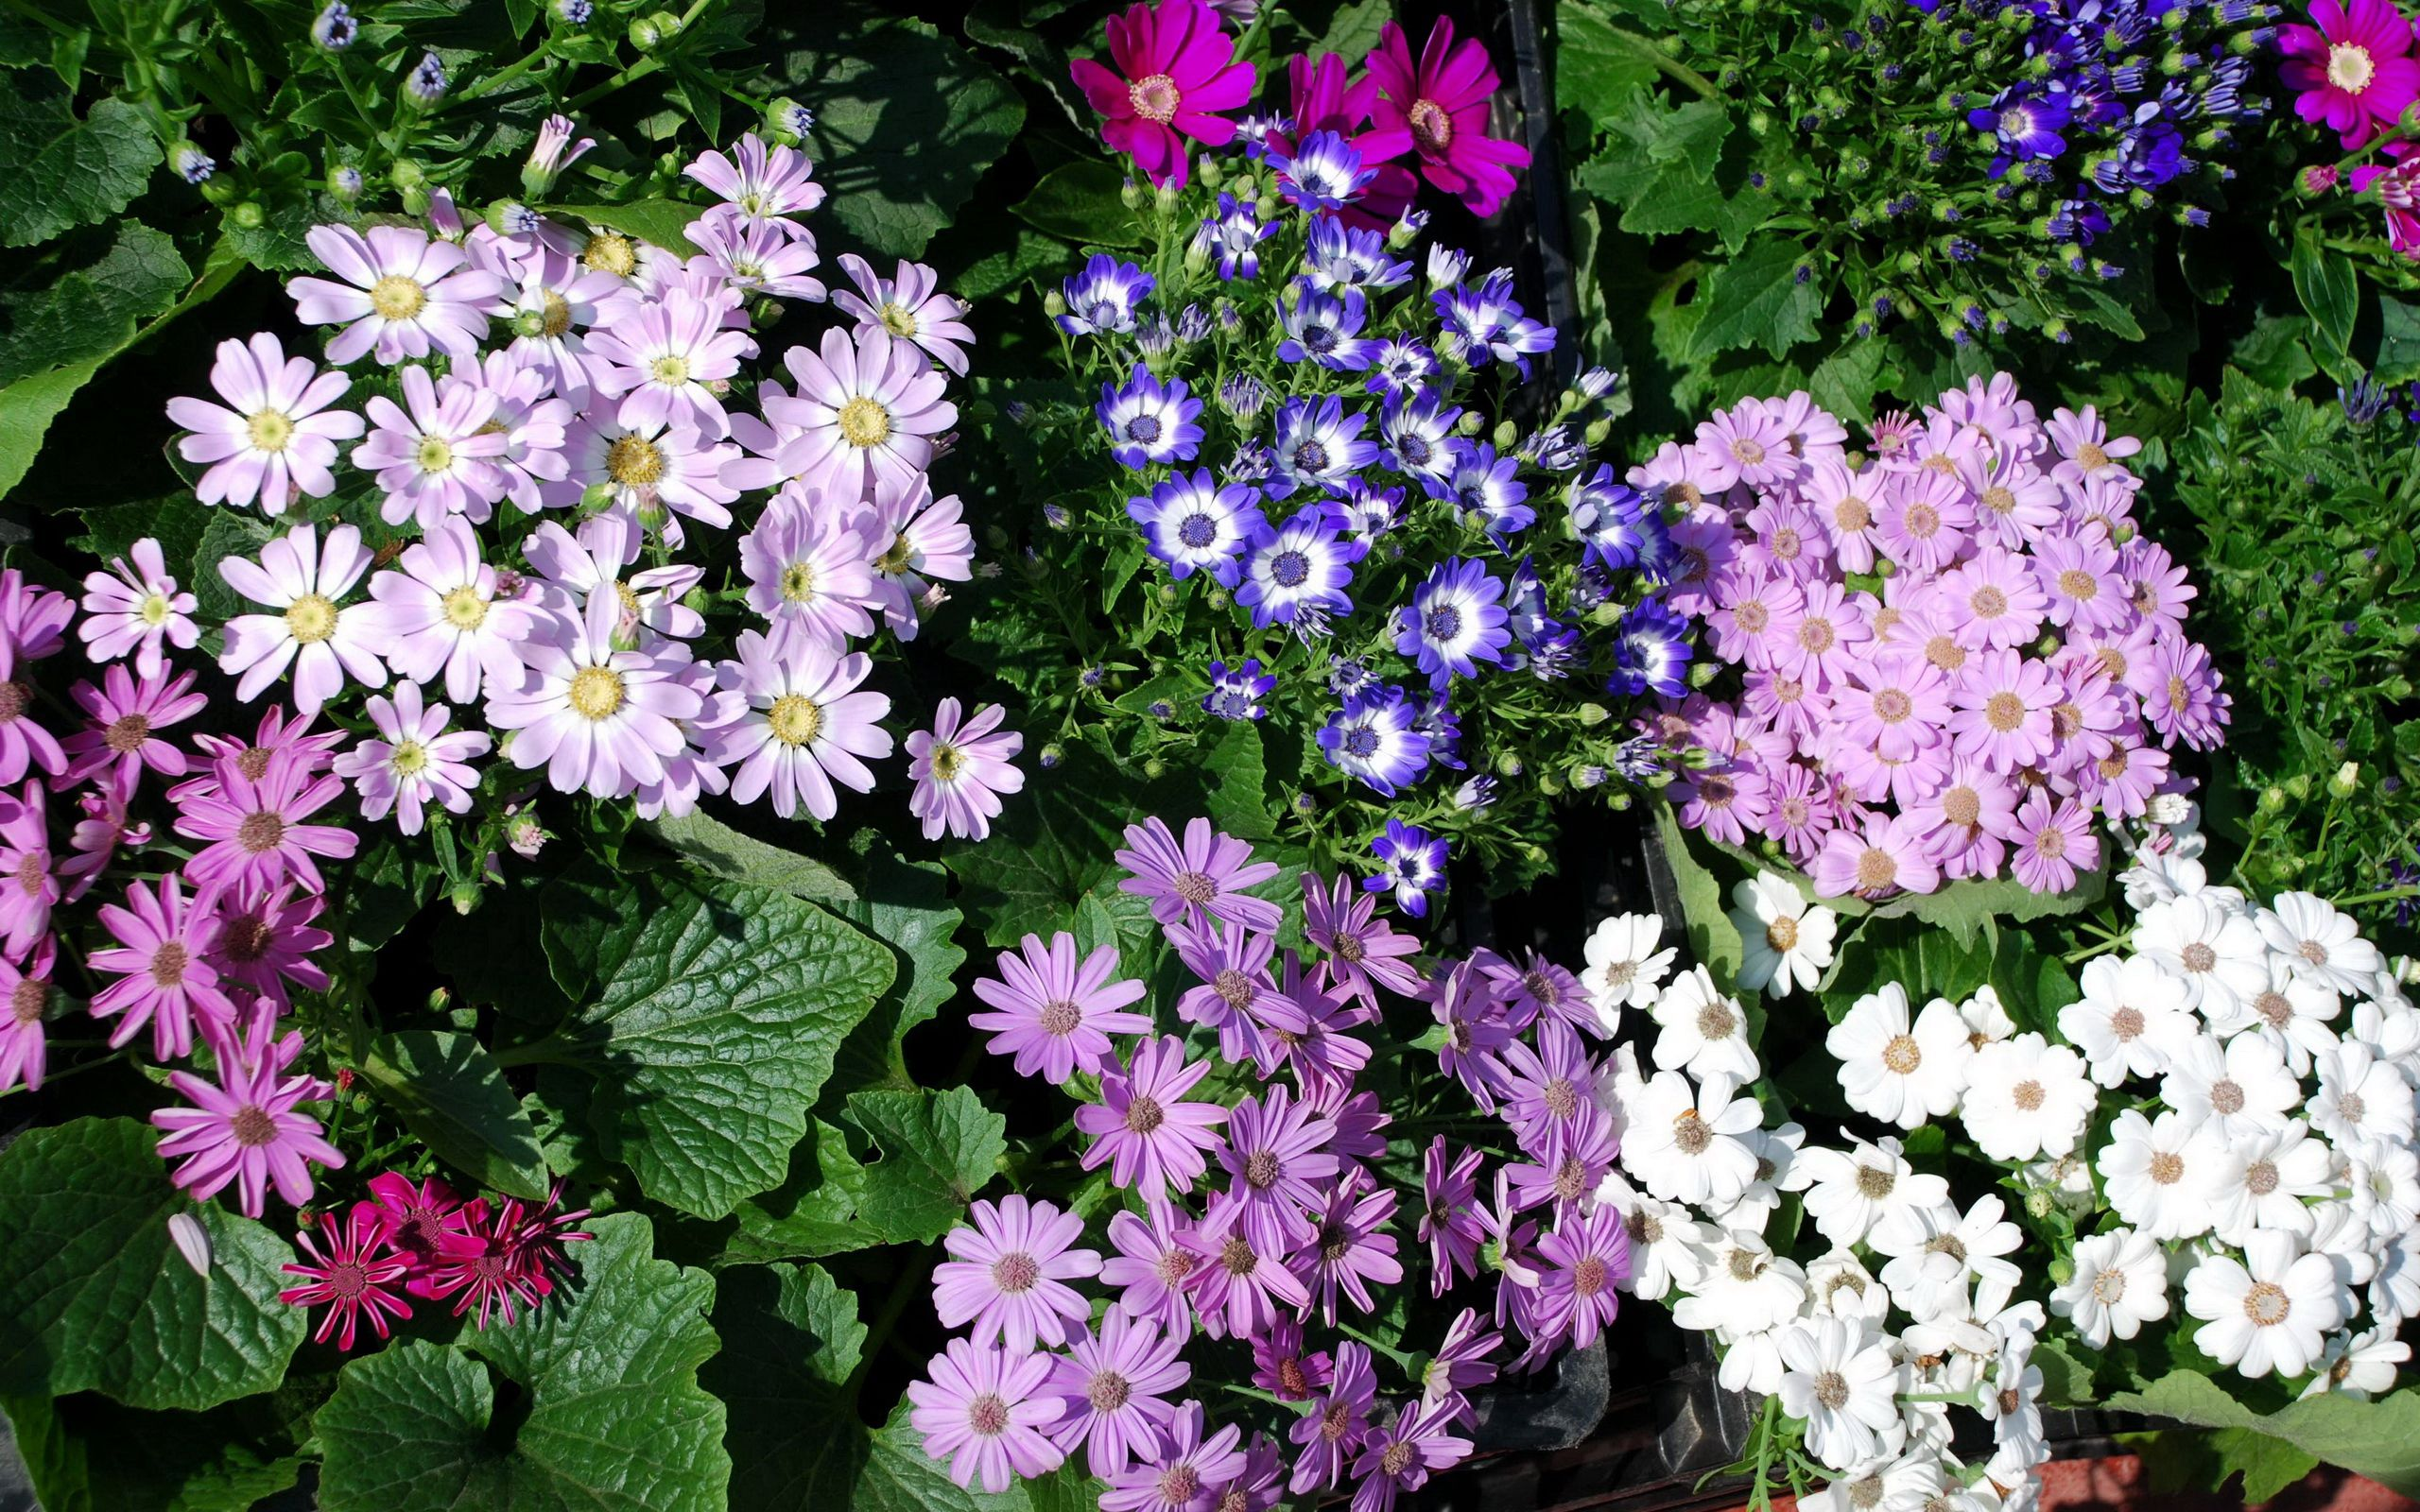 87975 download wallpaper Flowers, Lot, Different, Greens, Chrysanthemum screensavers and pictures for free